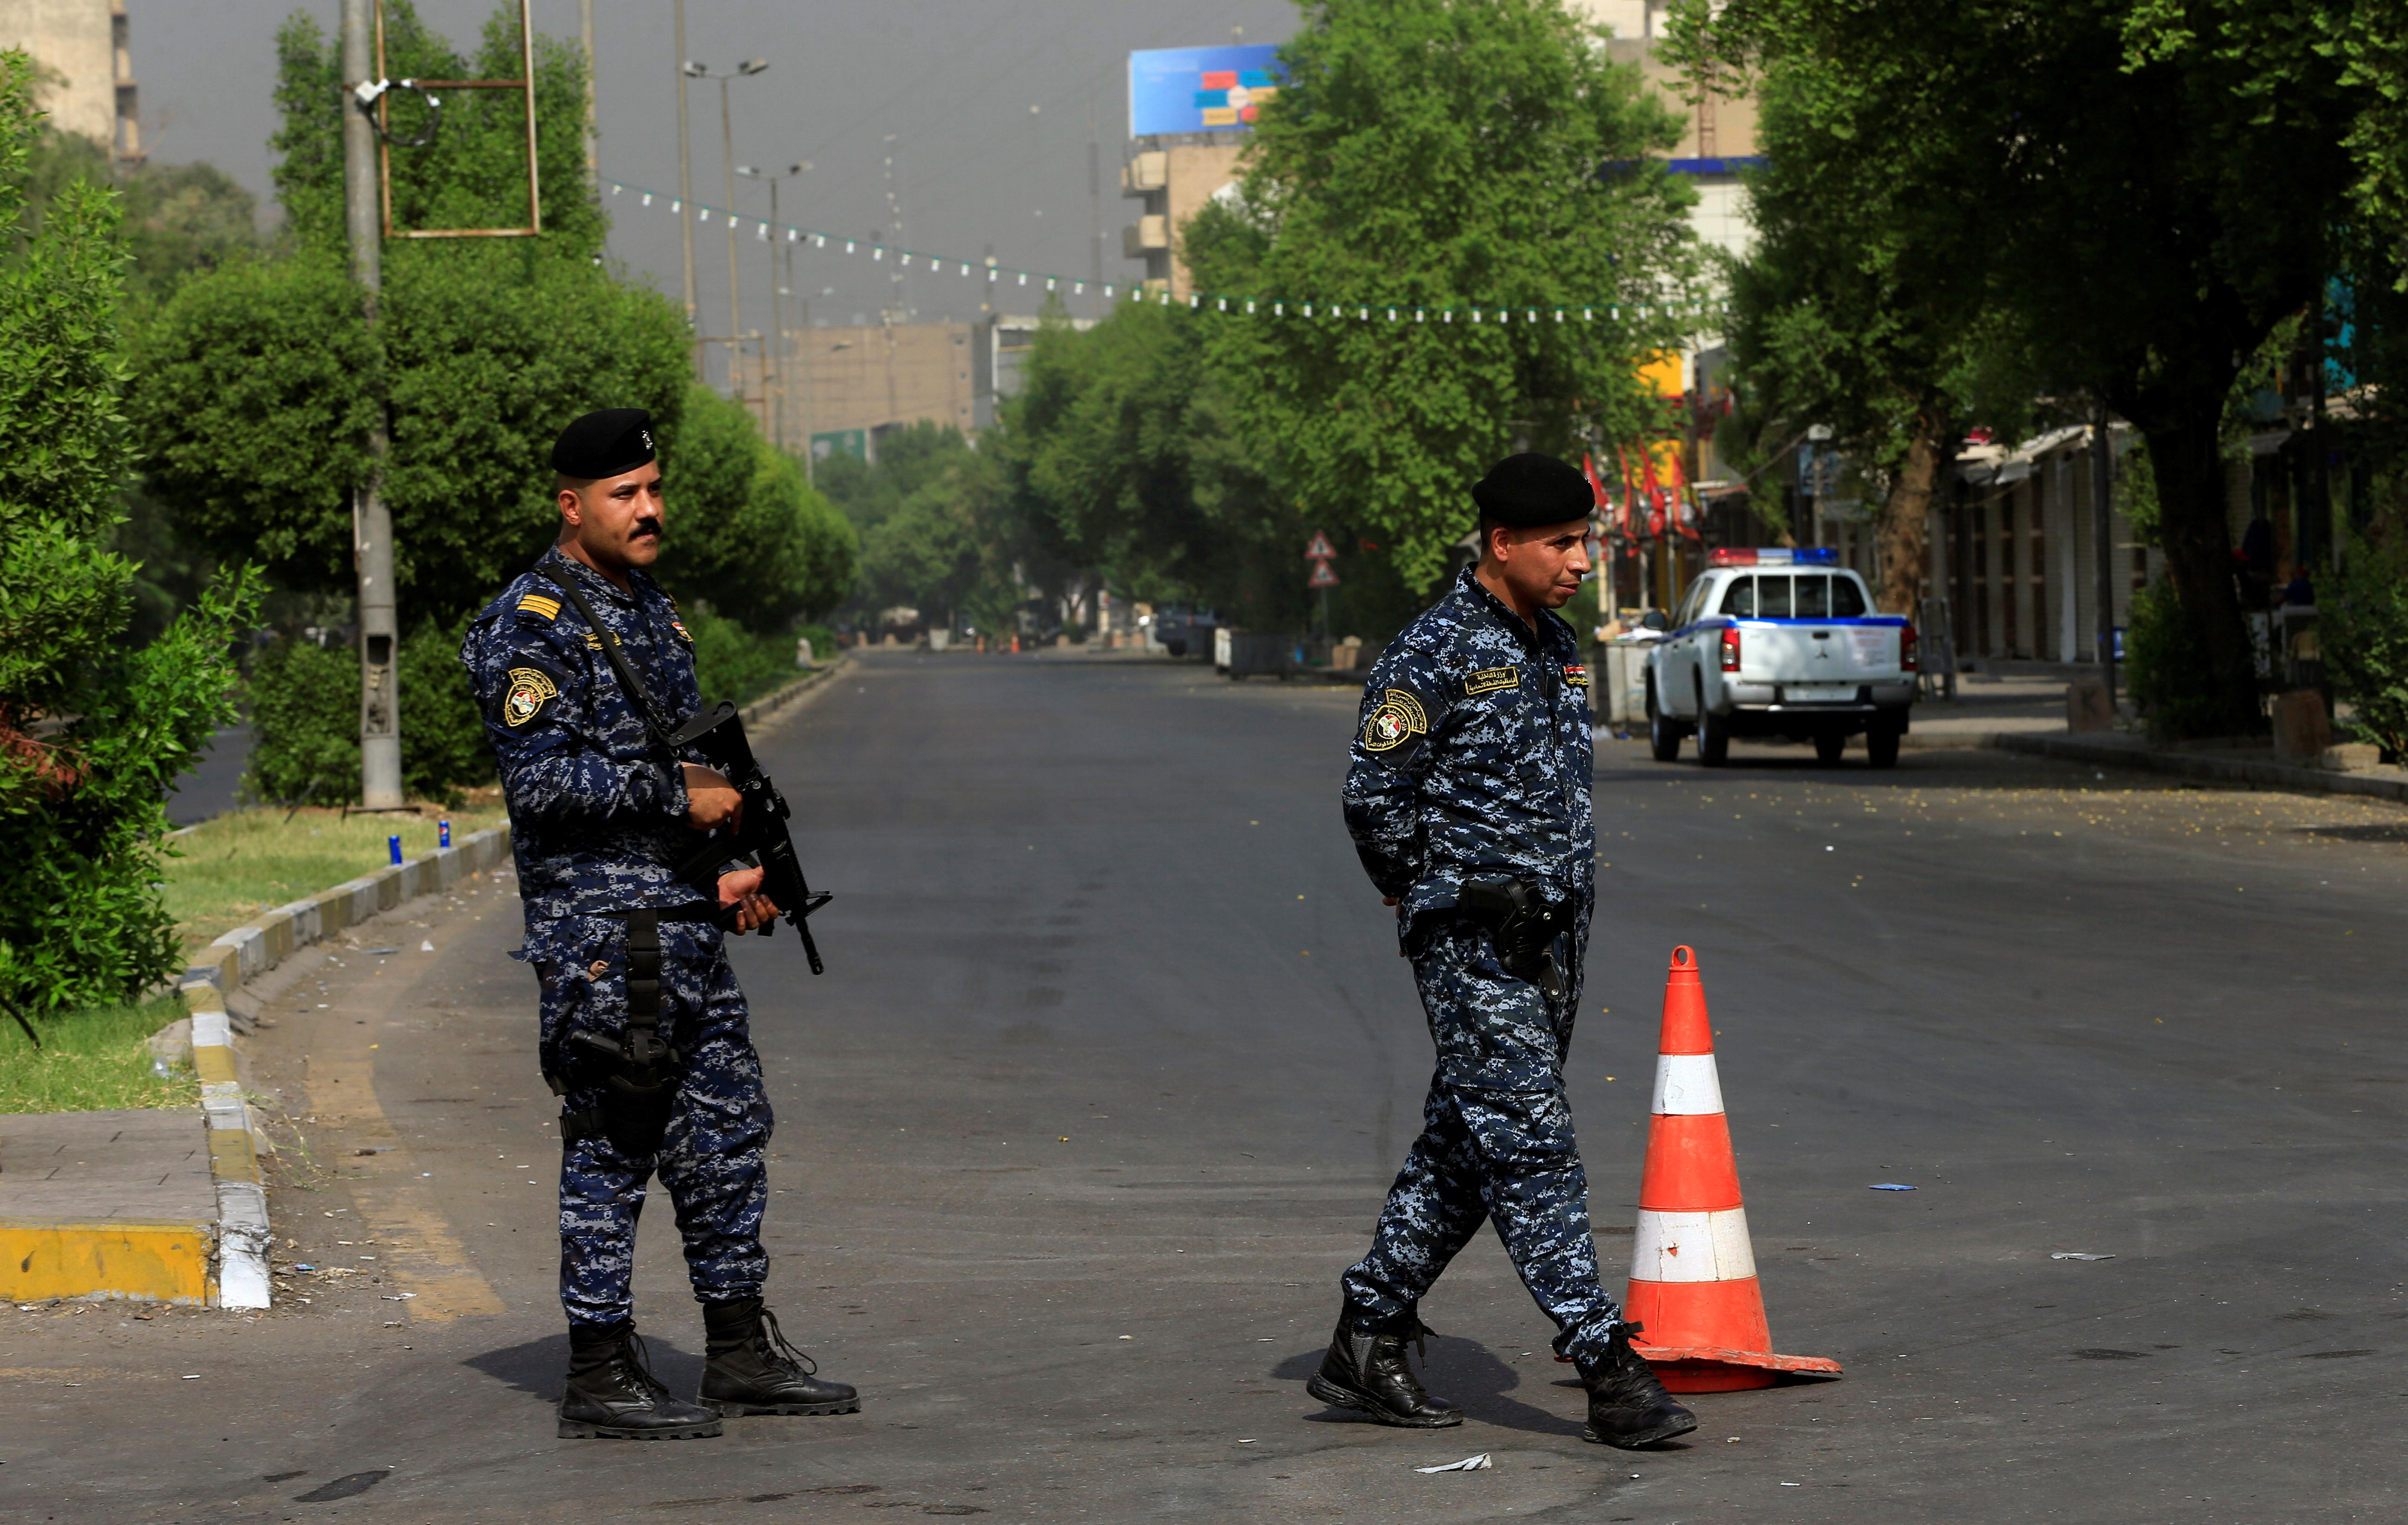 Iran says two border crossings to Iraq closed because of unrest in...